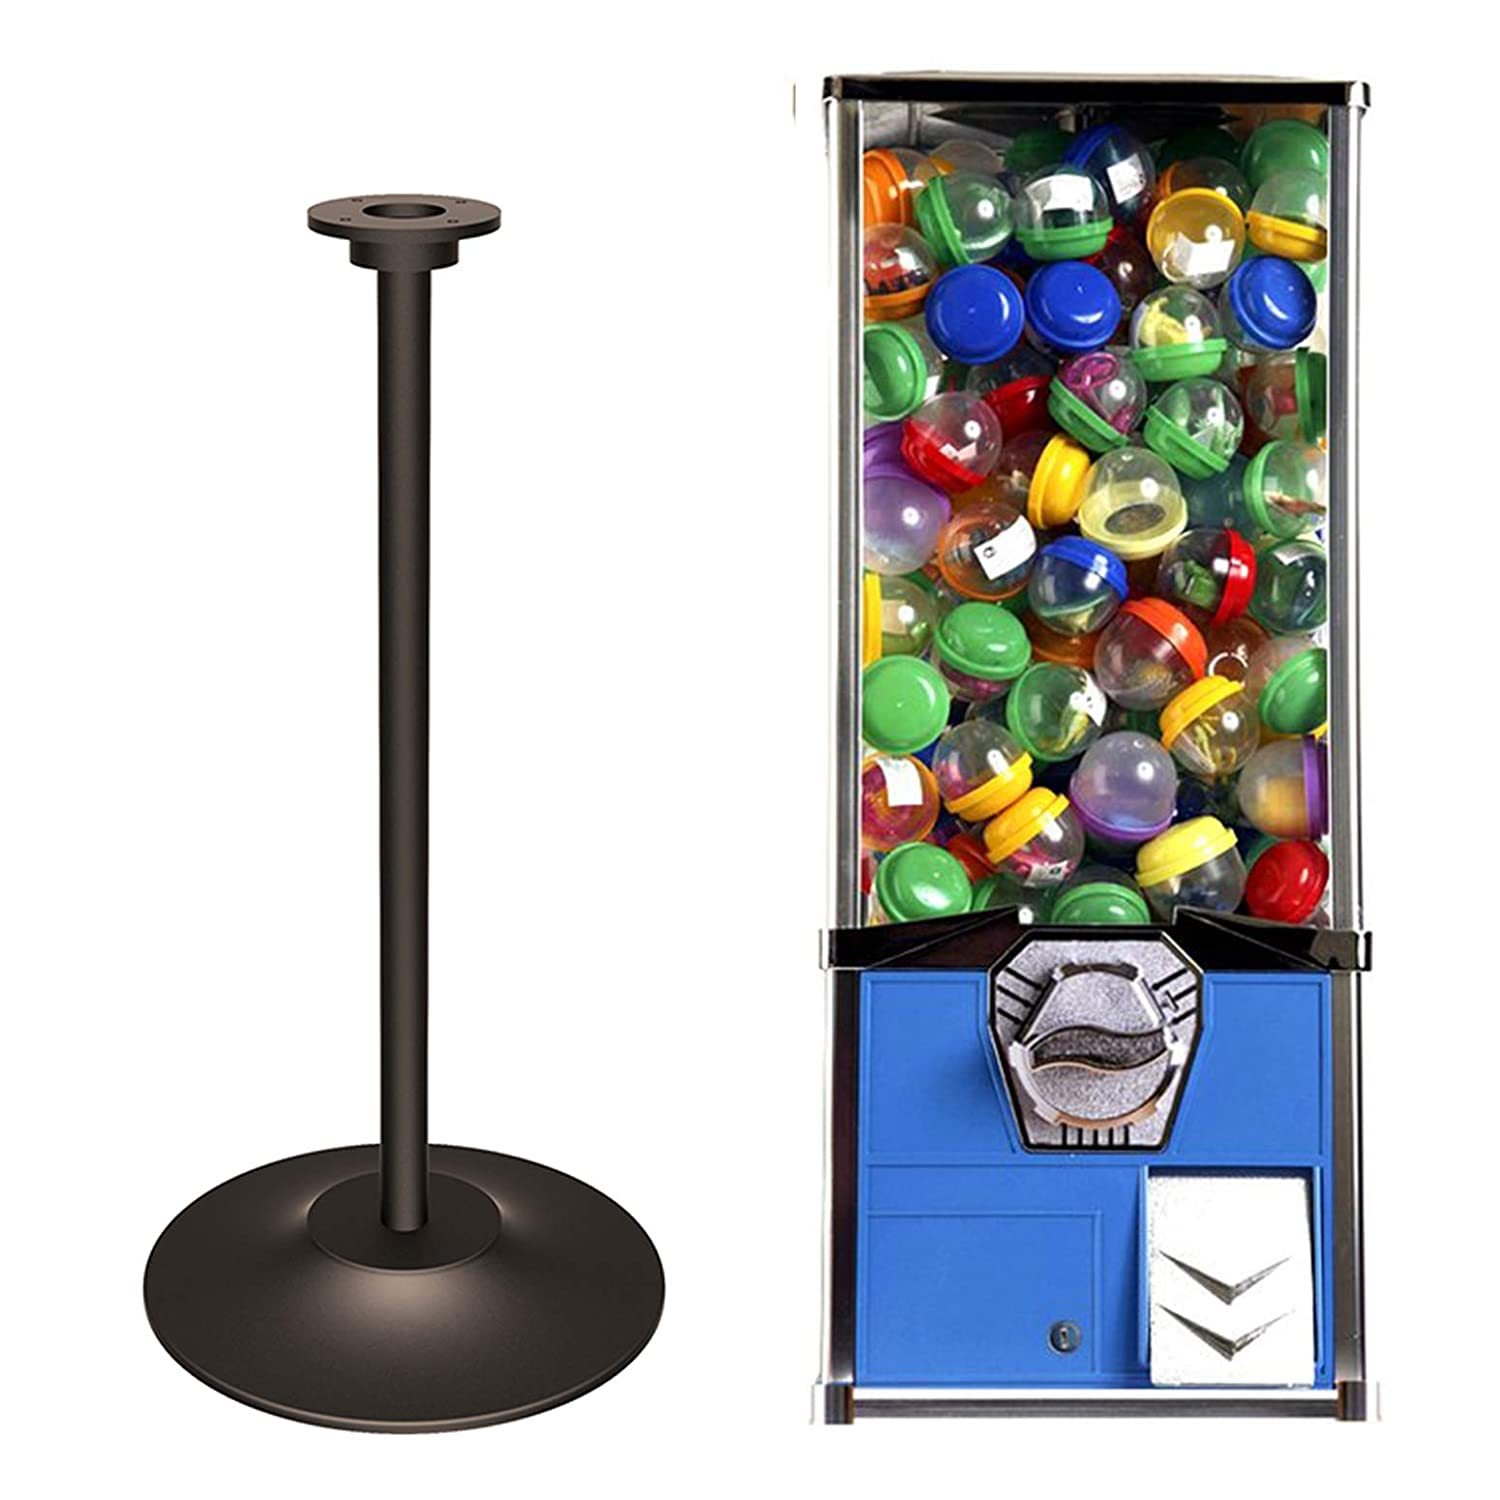 Vending Machine Super popular specialty New item store - Big Capsule Prize with Stand